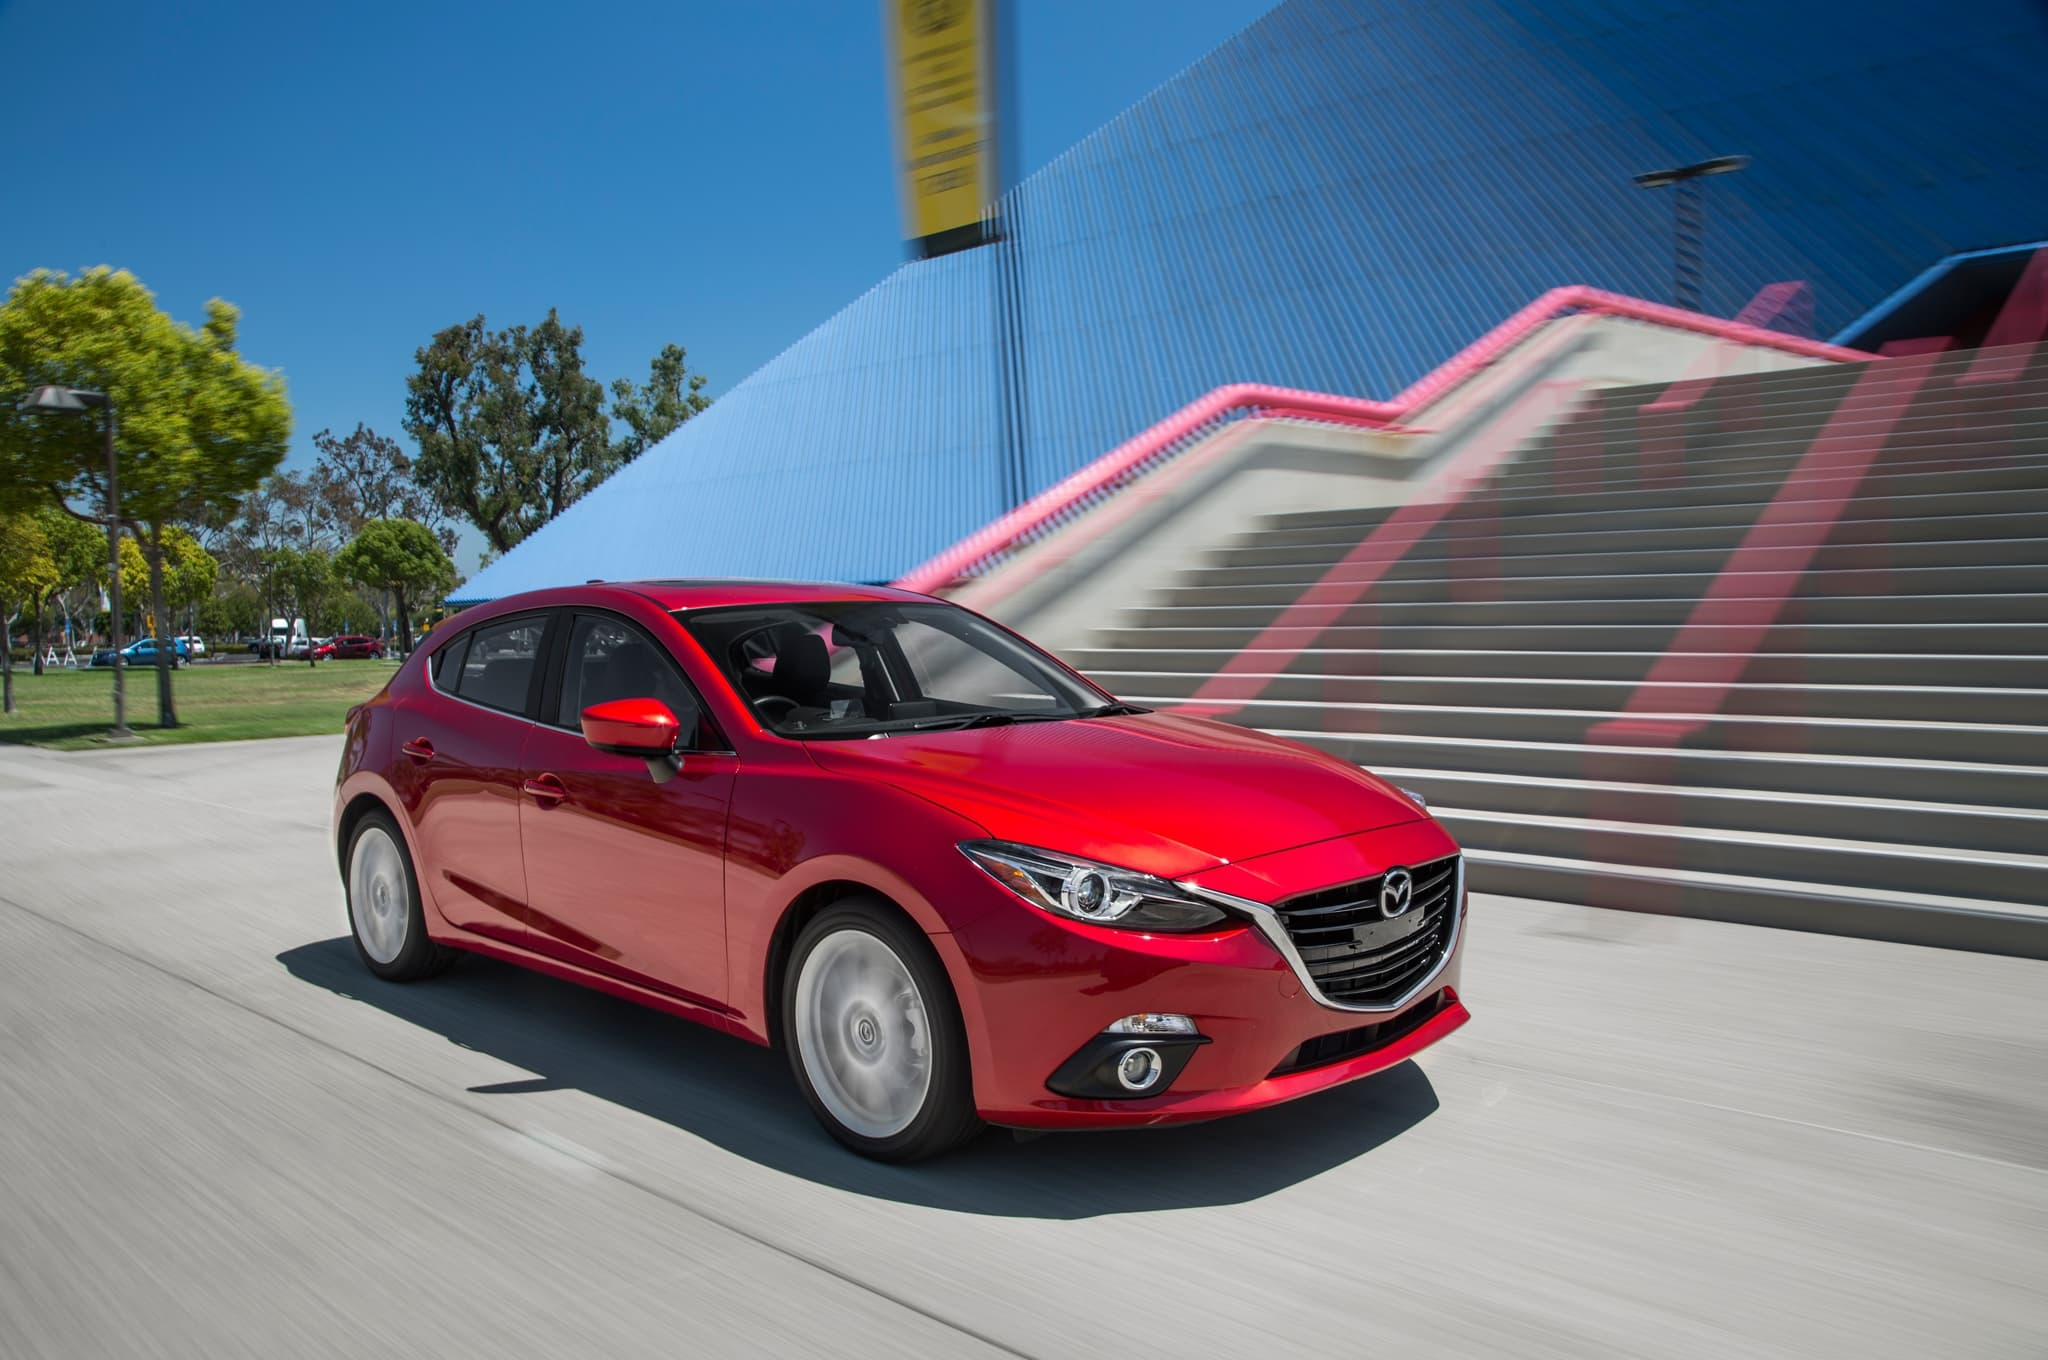 Mazda 3 2016 Hatchback wallpapers HD High Quality